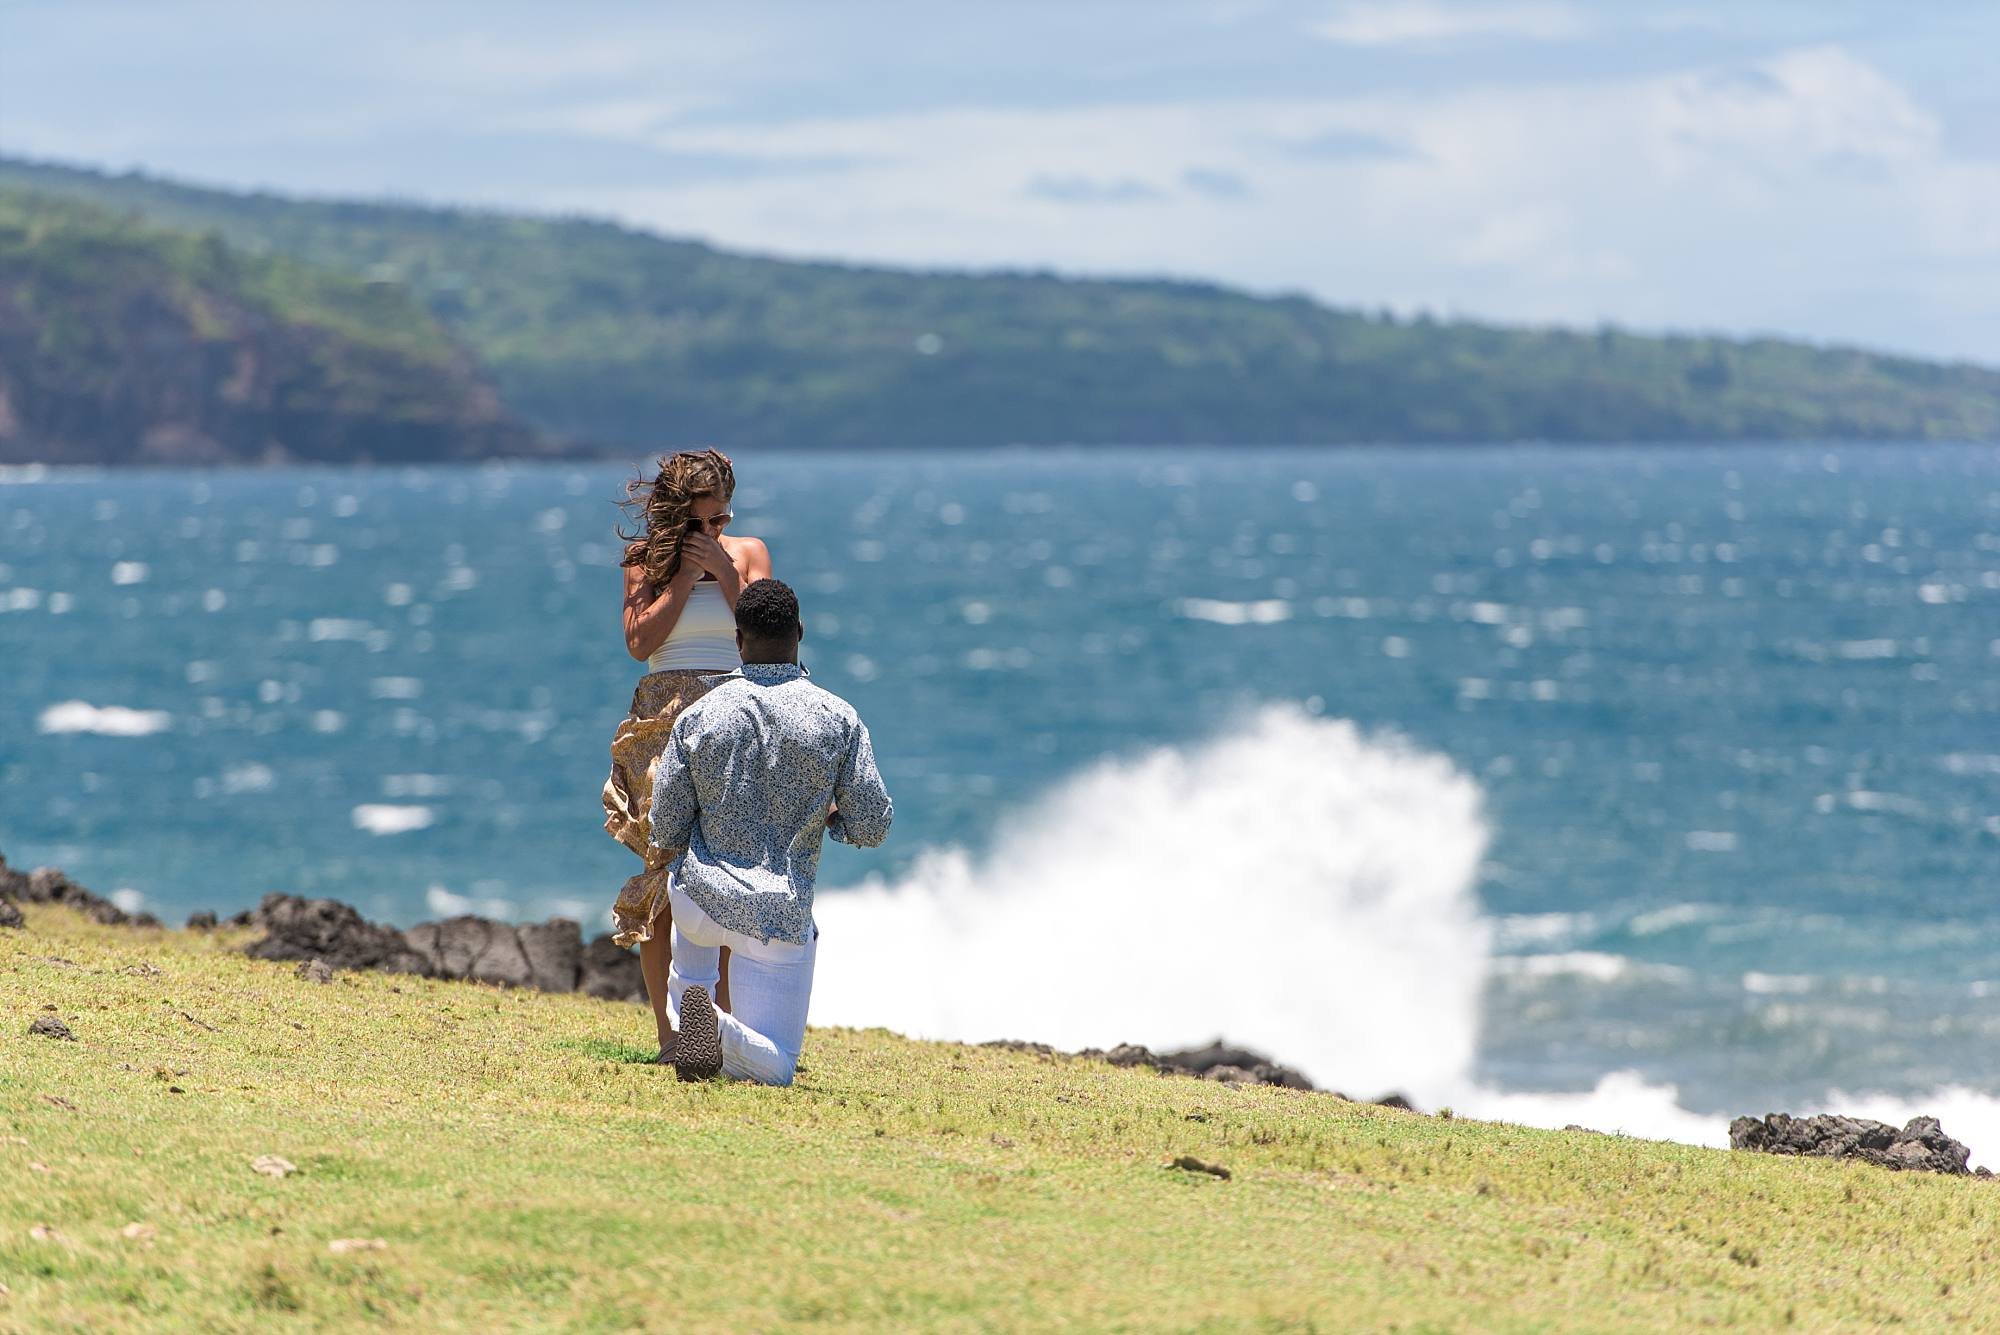 Brandin Cooks proposing to his girlfriend on Maui's coastline